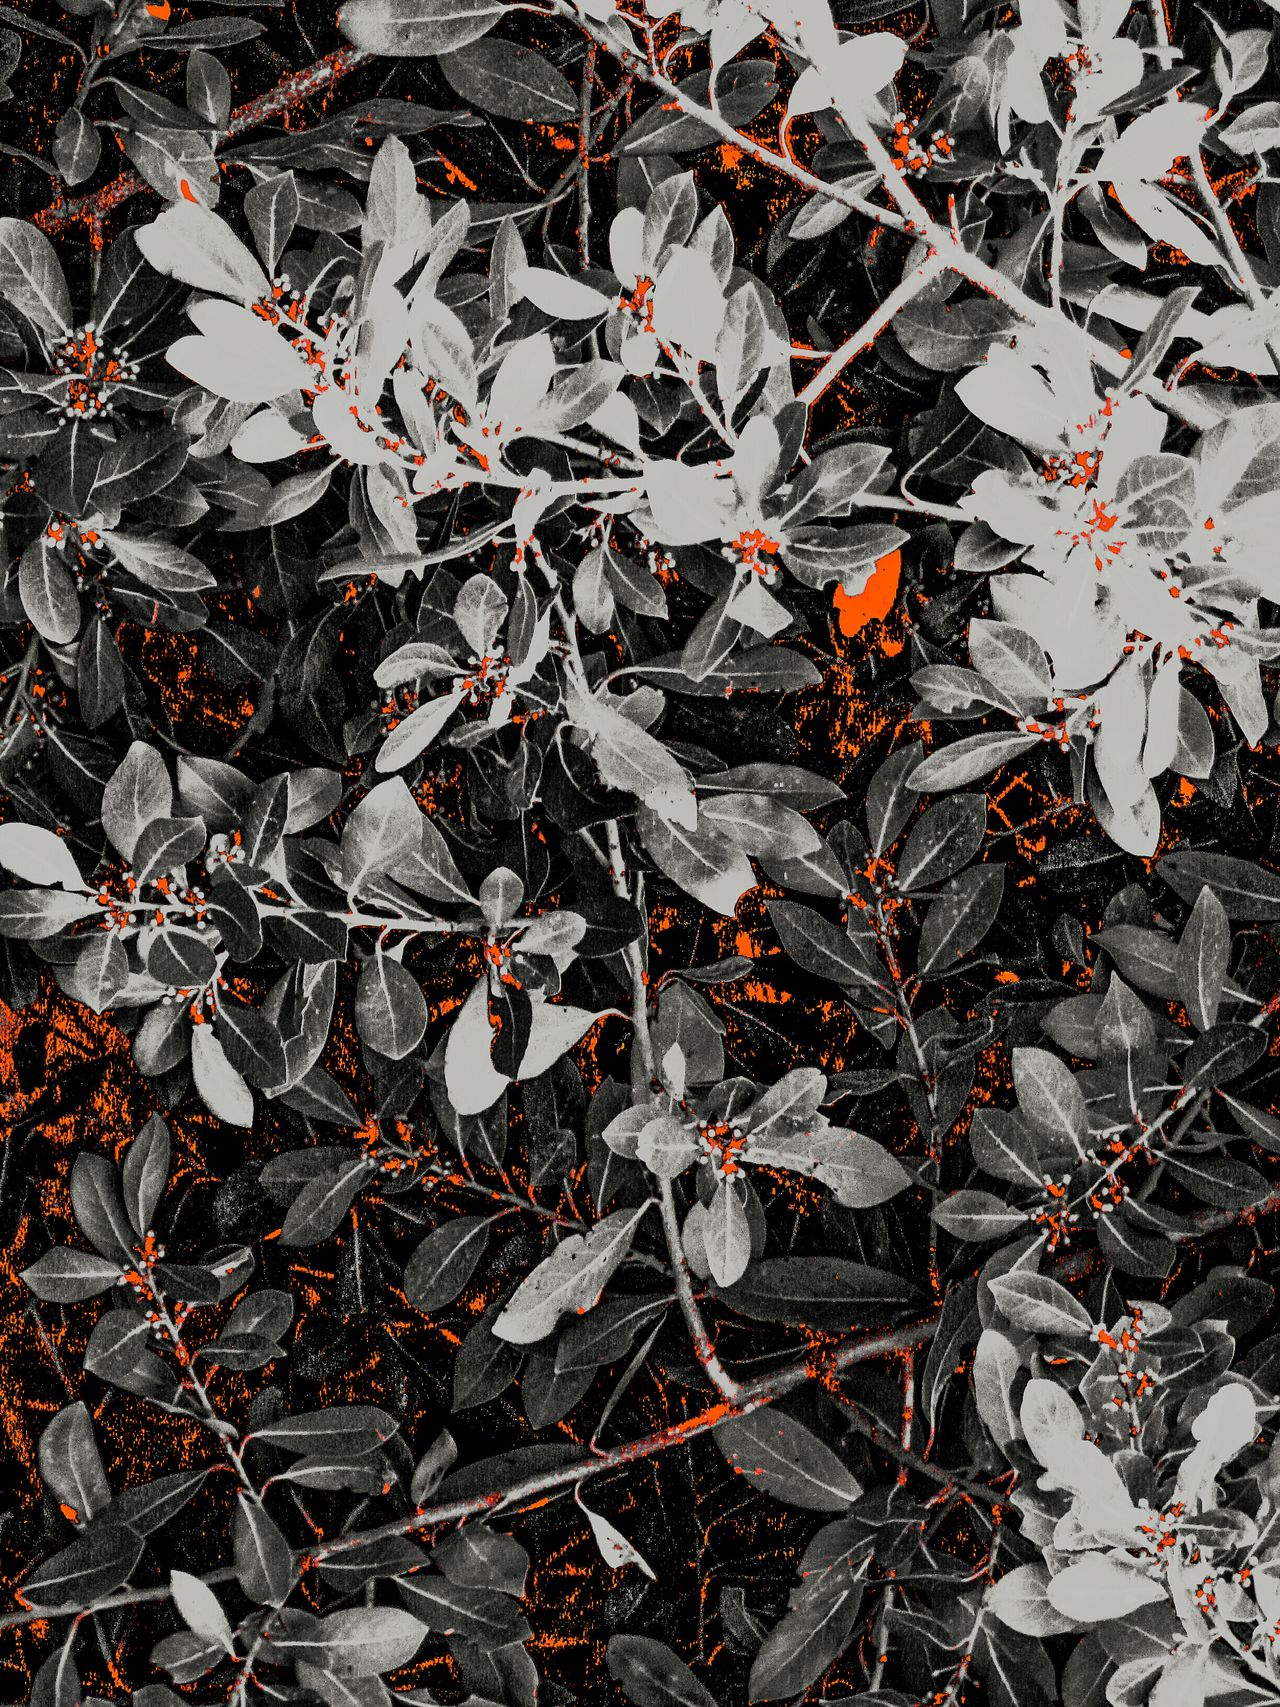 Monochrome Photography Carmine Colors And Patterns Pattern Pattern In Nature Leaf Plant Red And Black Nature Growth Autumn Close-up Leaves Beauty In Nature Backgrounds Botany Tranquility Scenics Fine Art